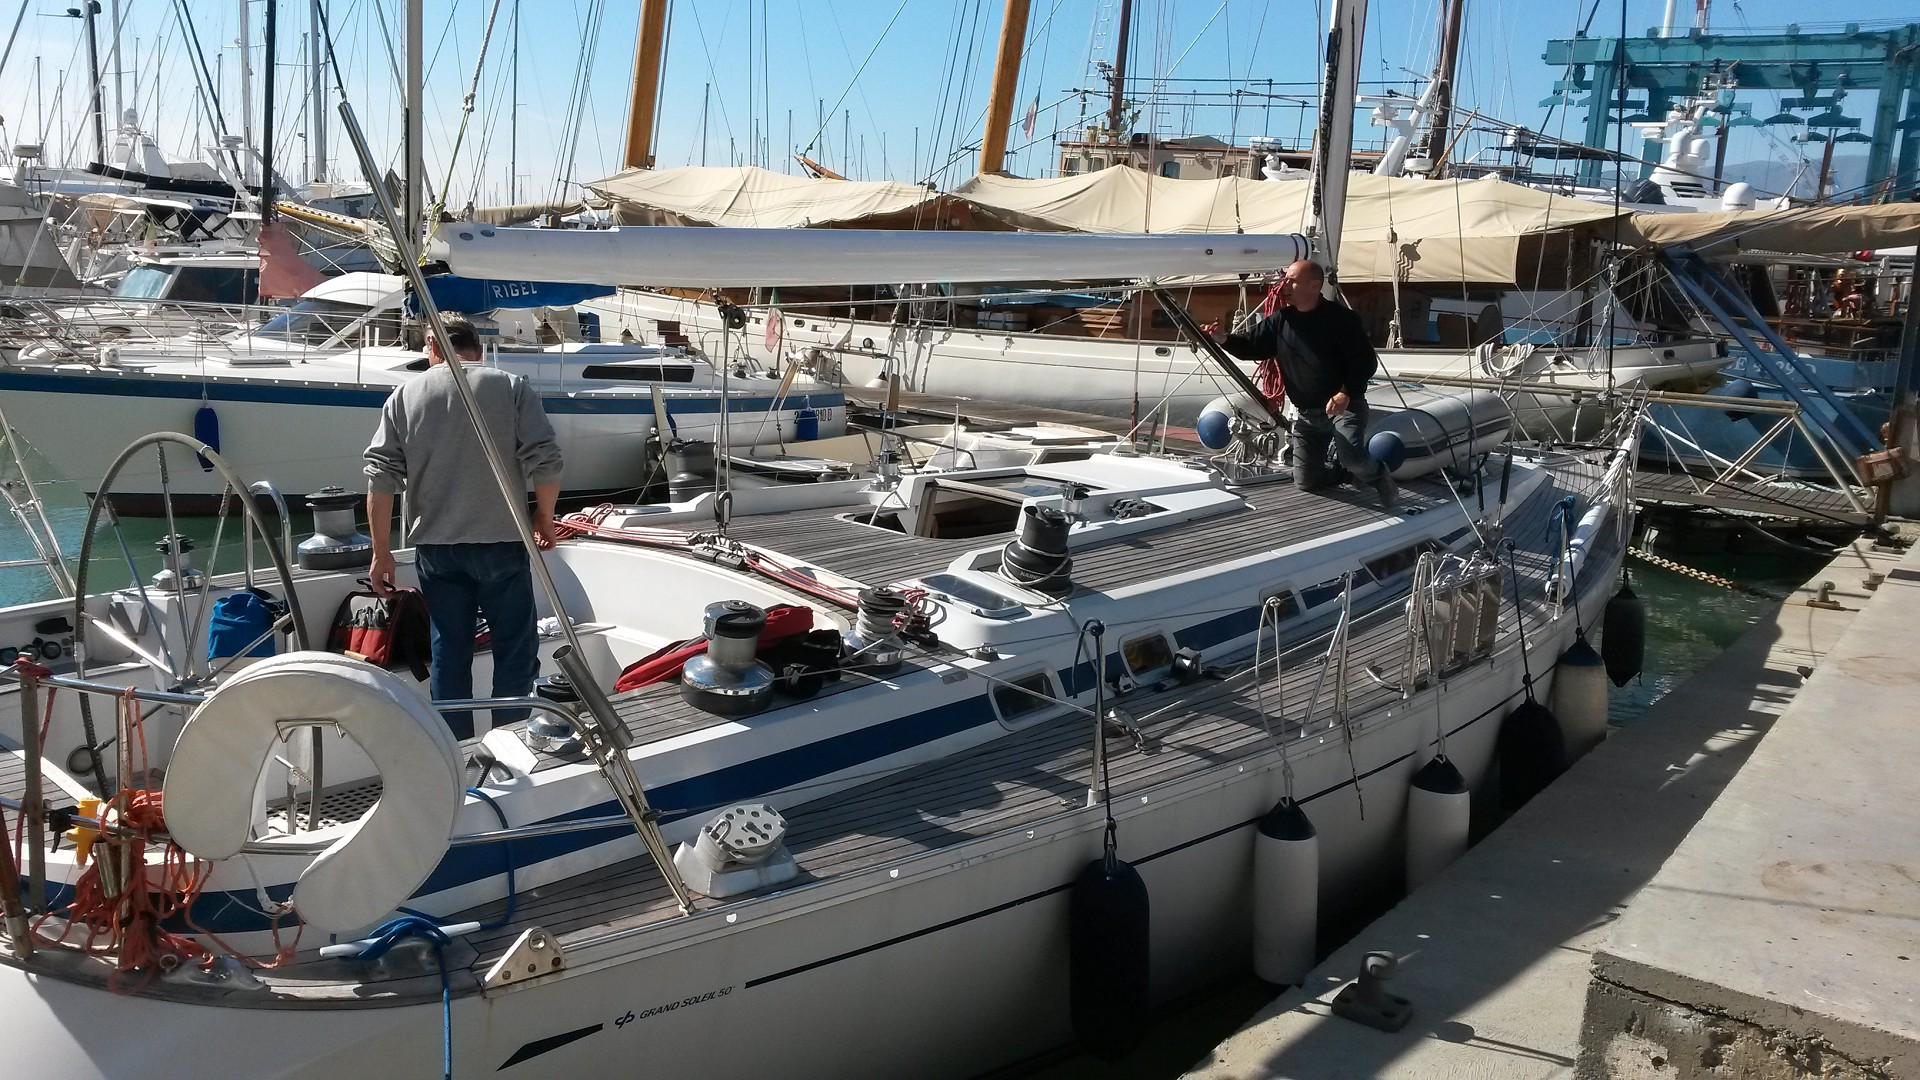 Masts, manoeuvres, equipment and rigging